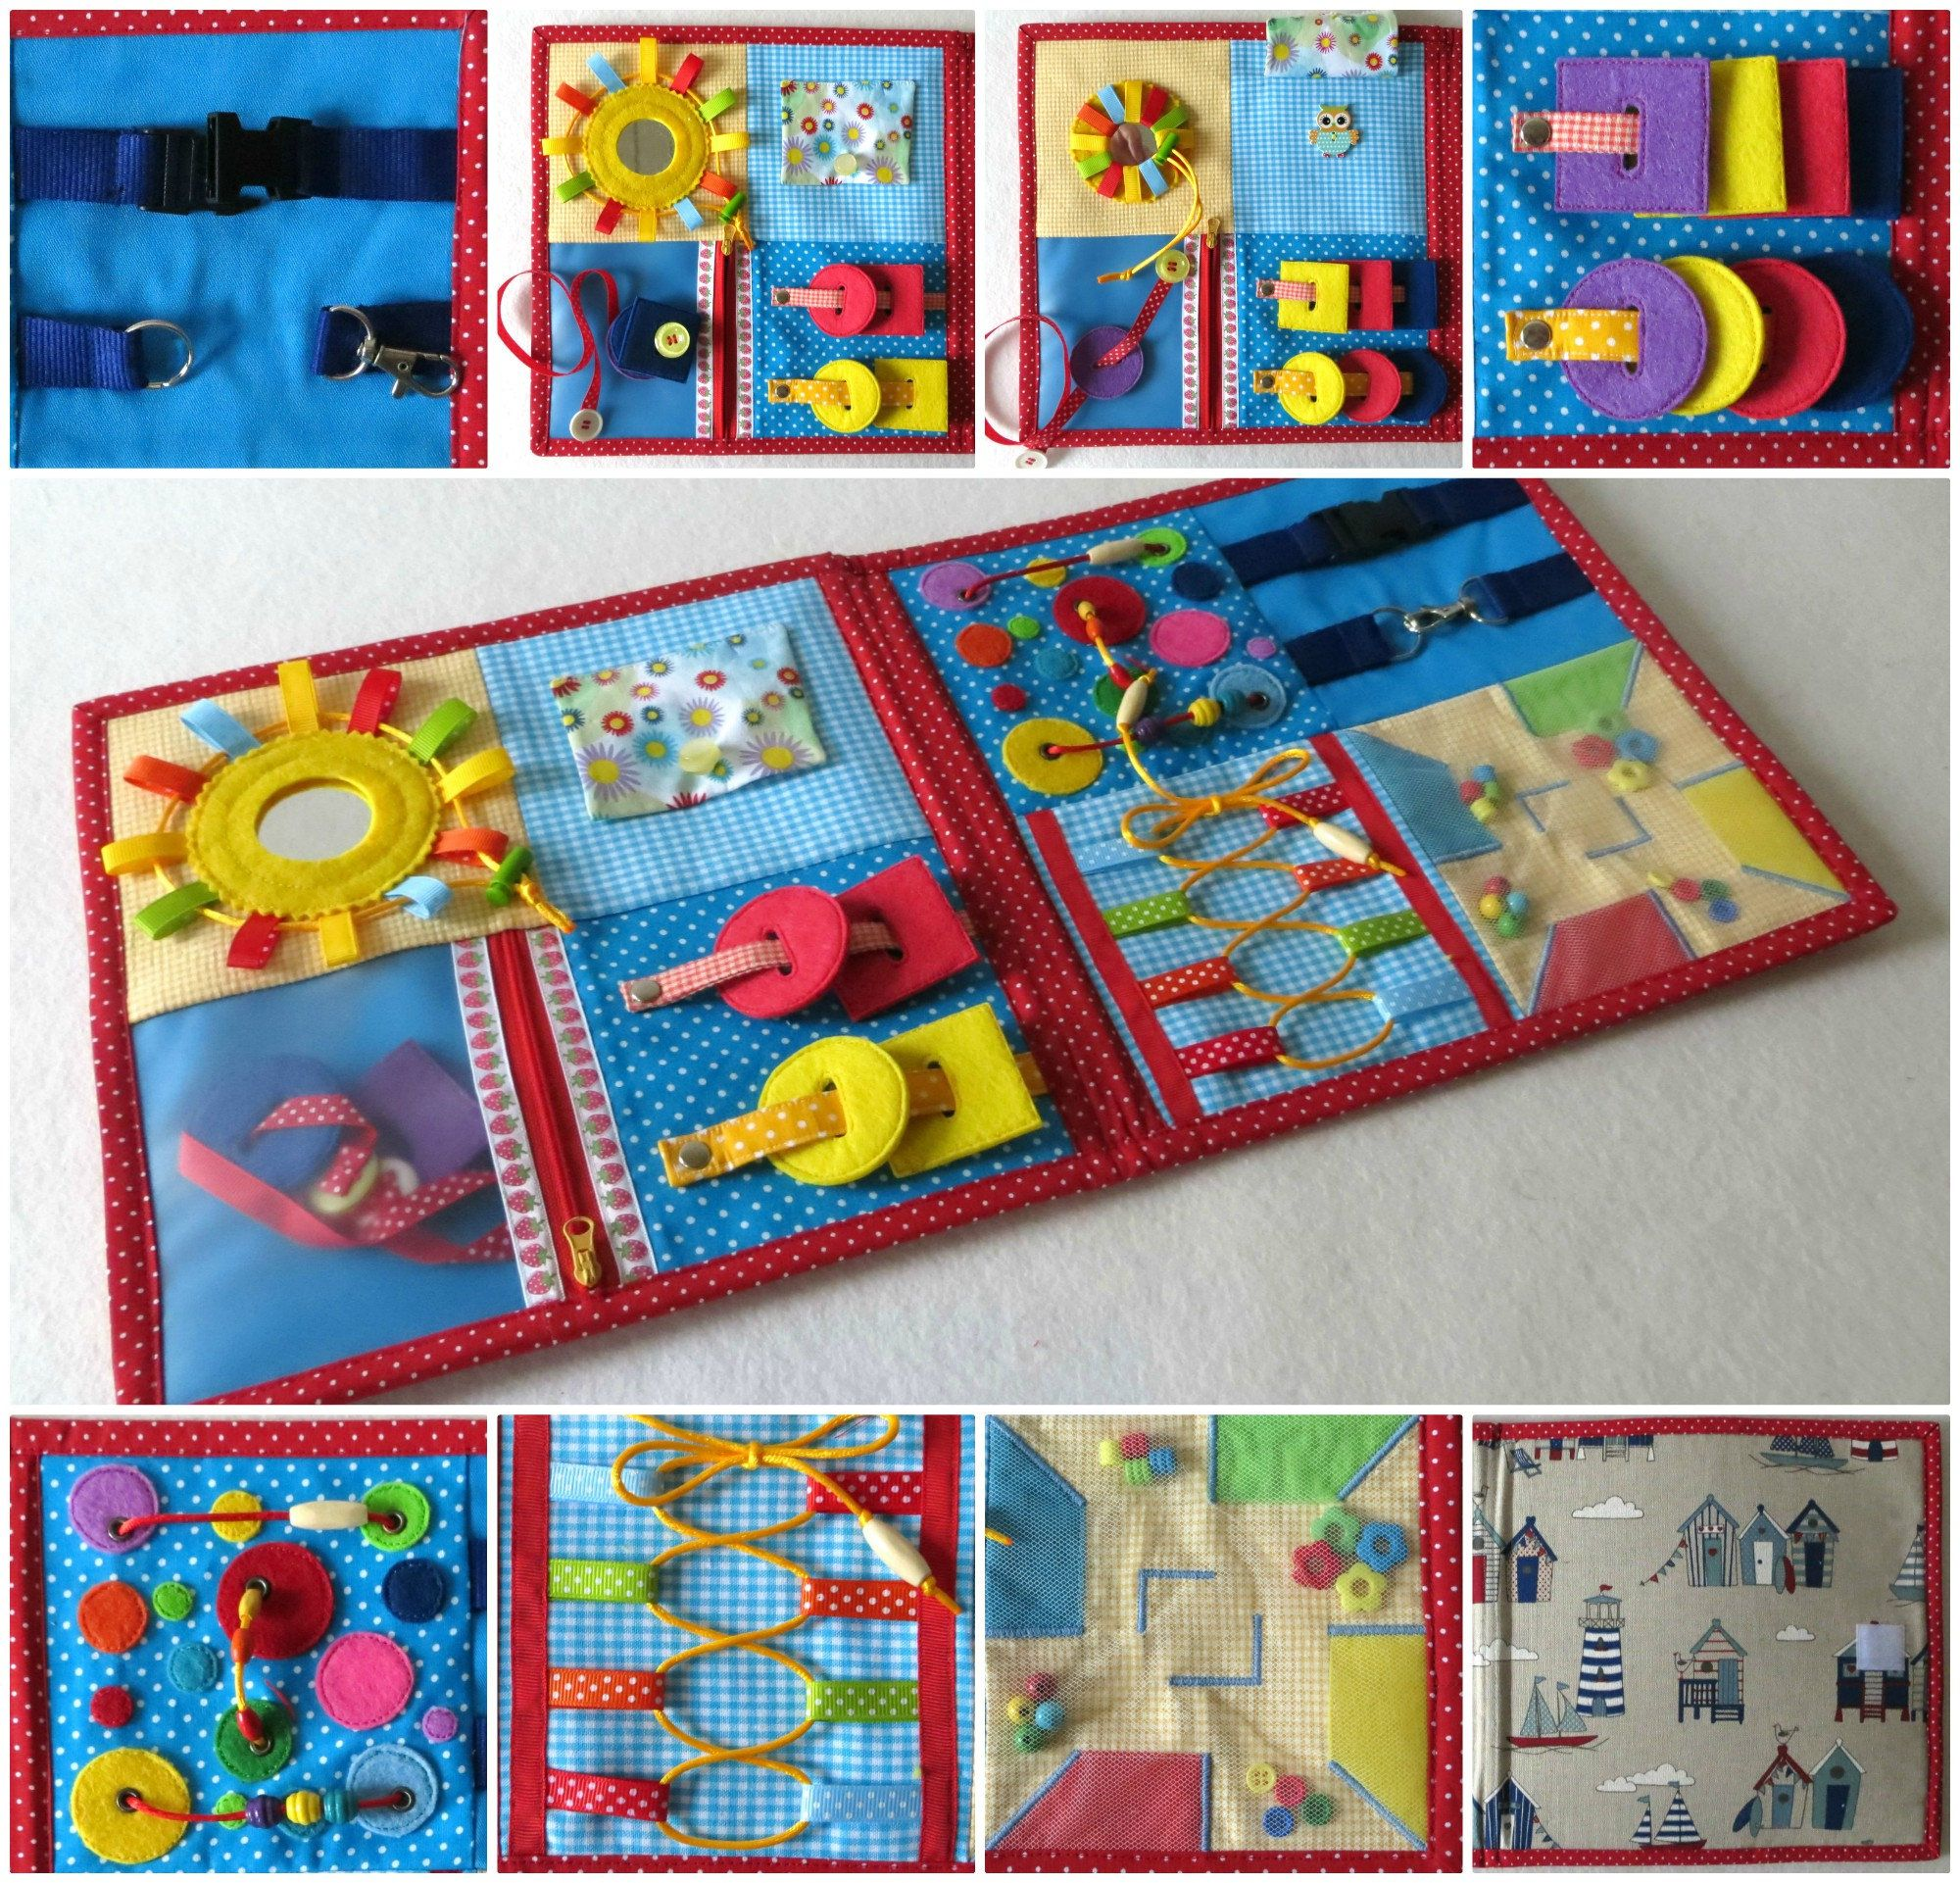 Activity fabric Board Therapy Toy autistic children Sensory travel toy occupational therapy Dementia Alzheimer